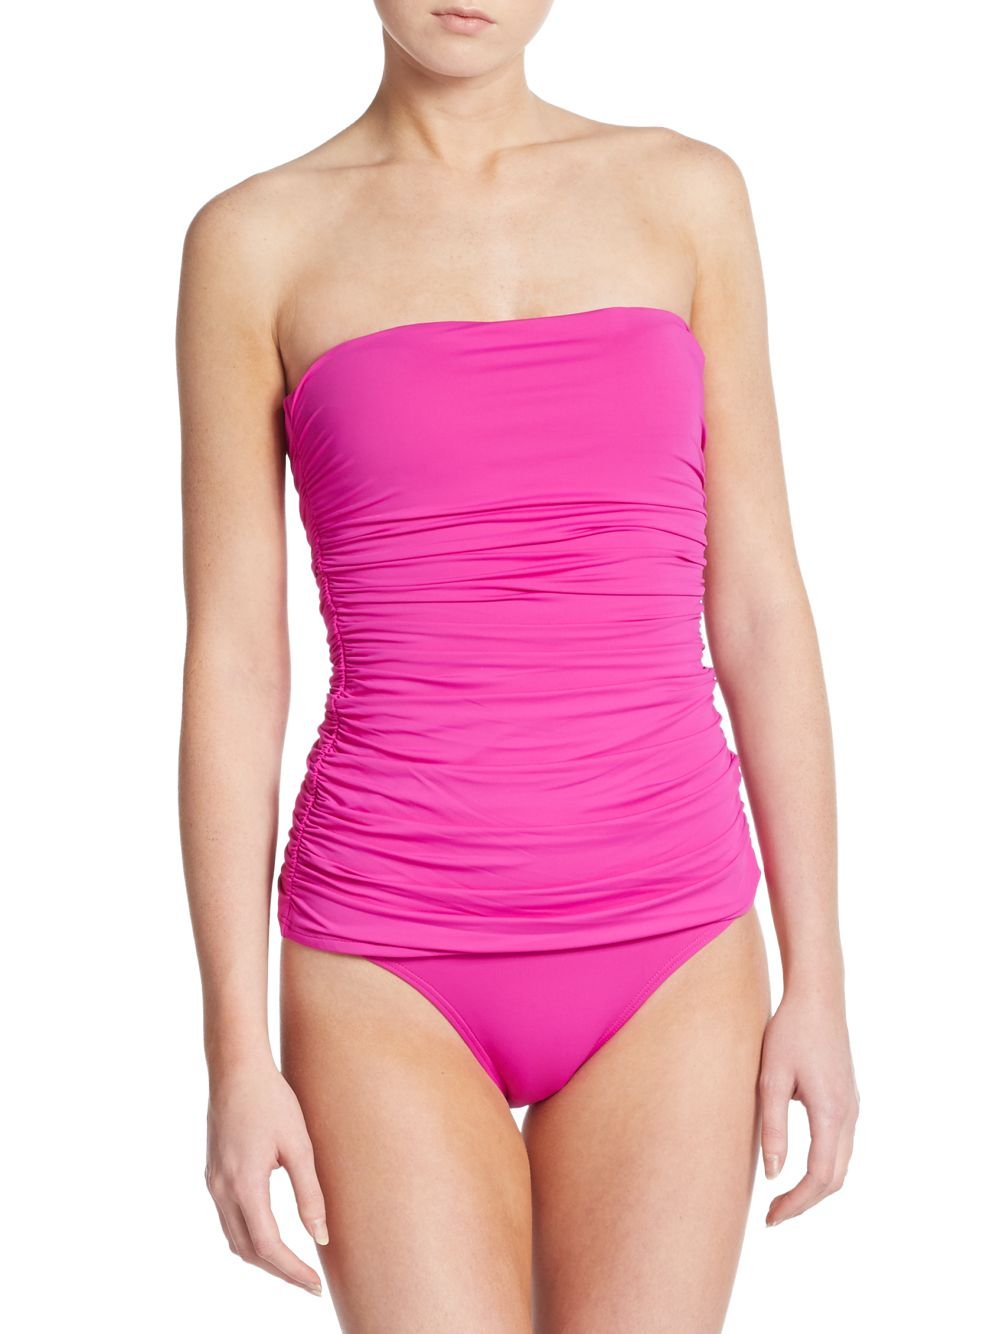 c7beca8afb764 Lyst - Ivanka Trump One-Piece Ruched Swimsuit in Pink